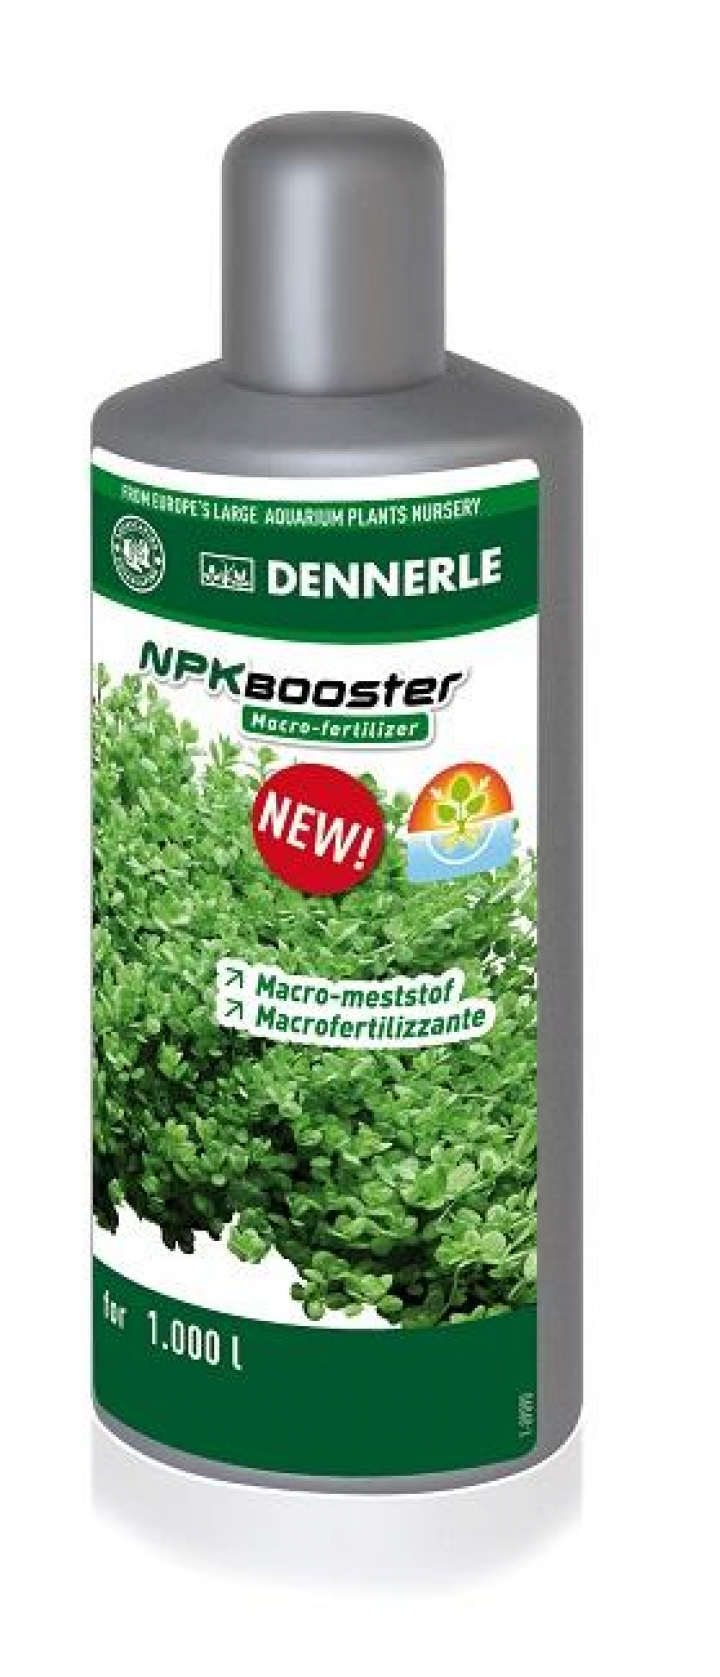 Dennerle - NPK Booster 100 ml